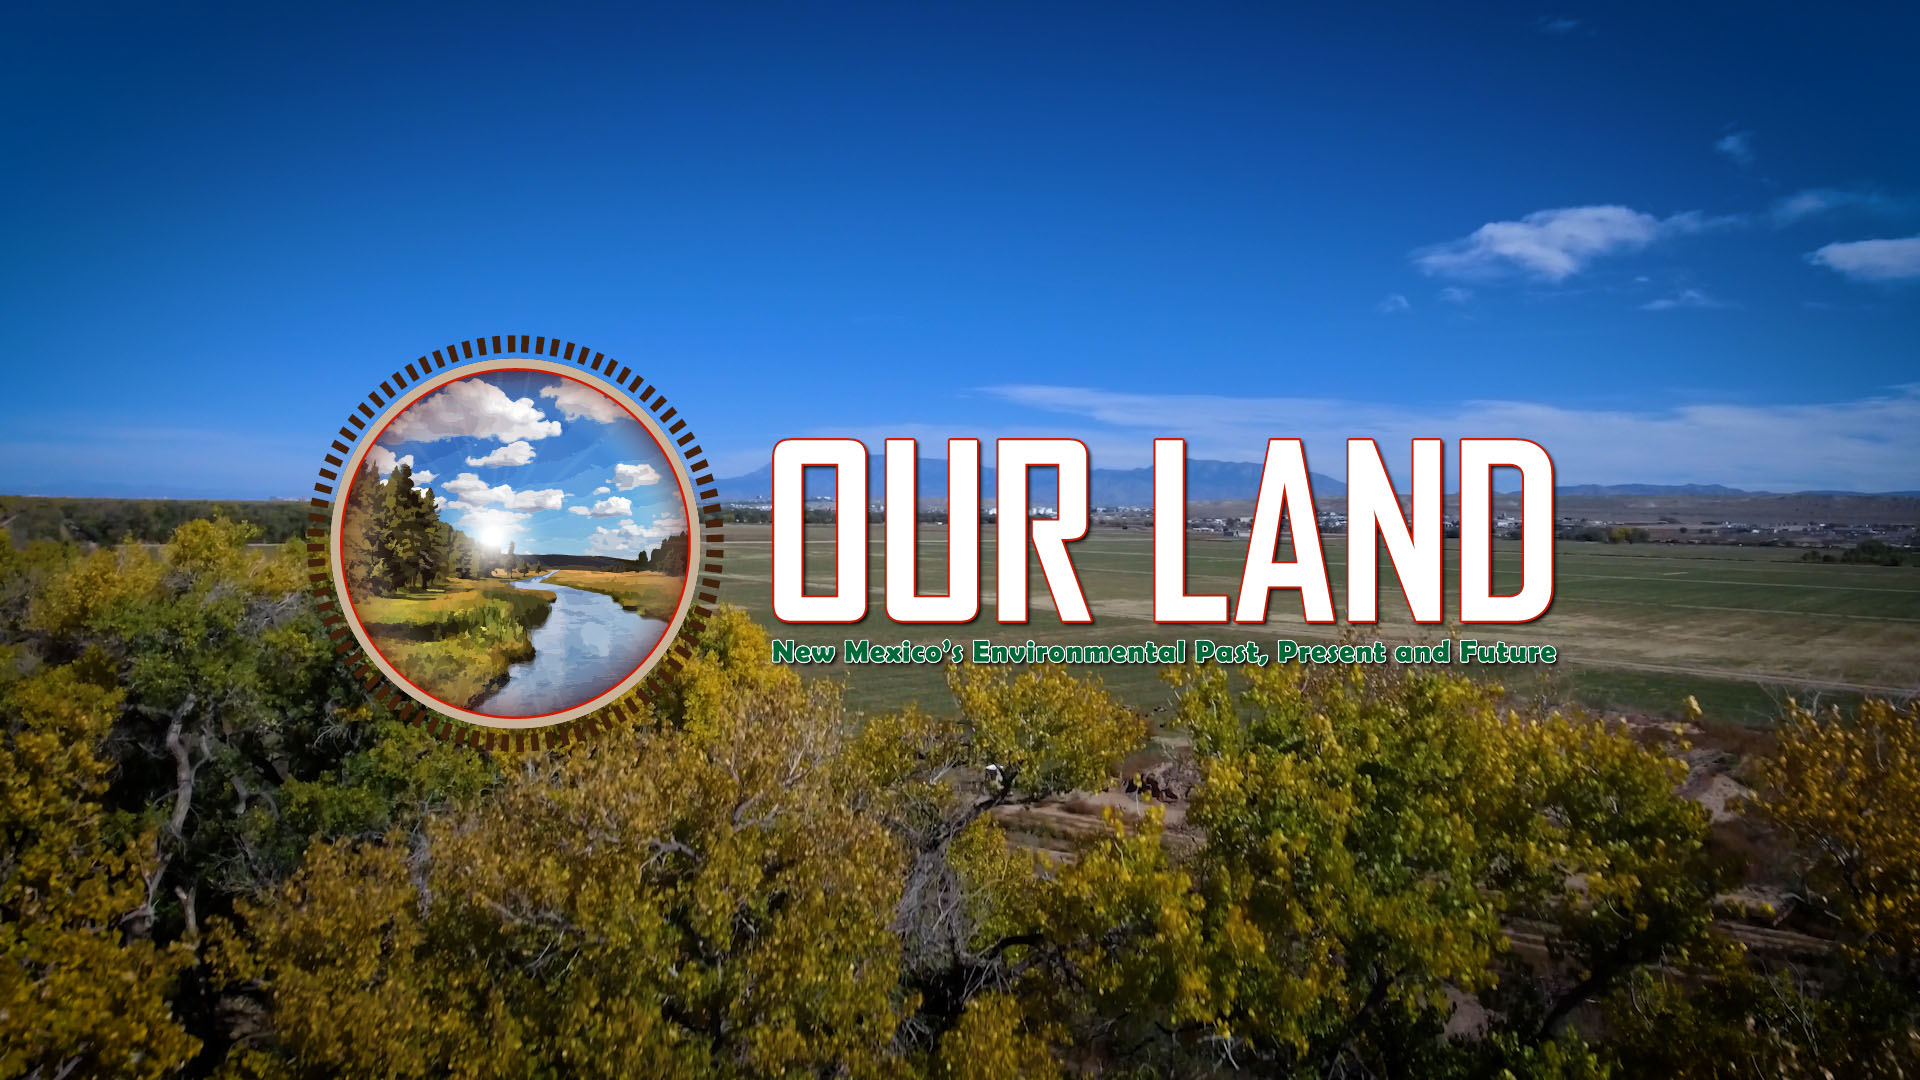 NMiF: Our Land - Valle de Oro